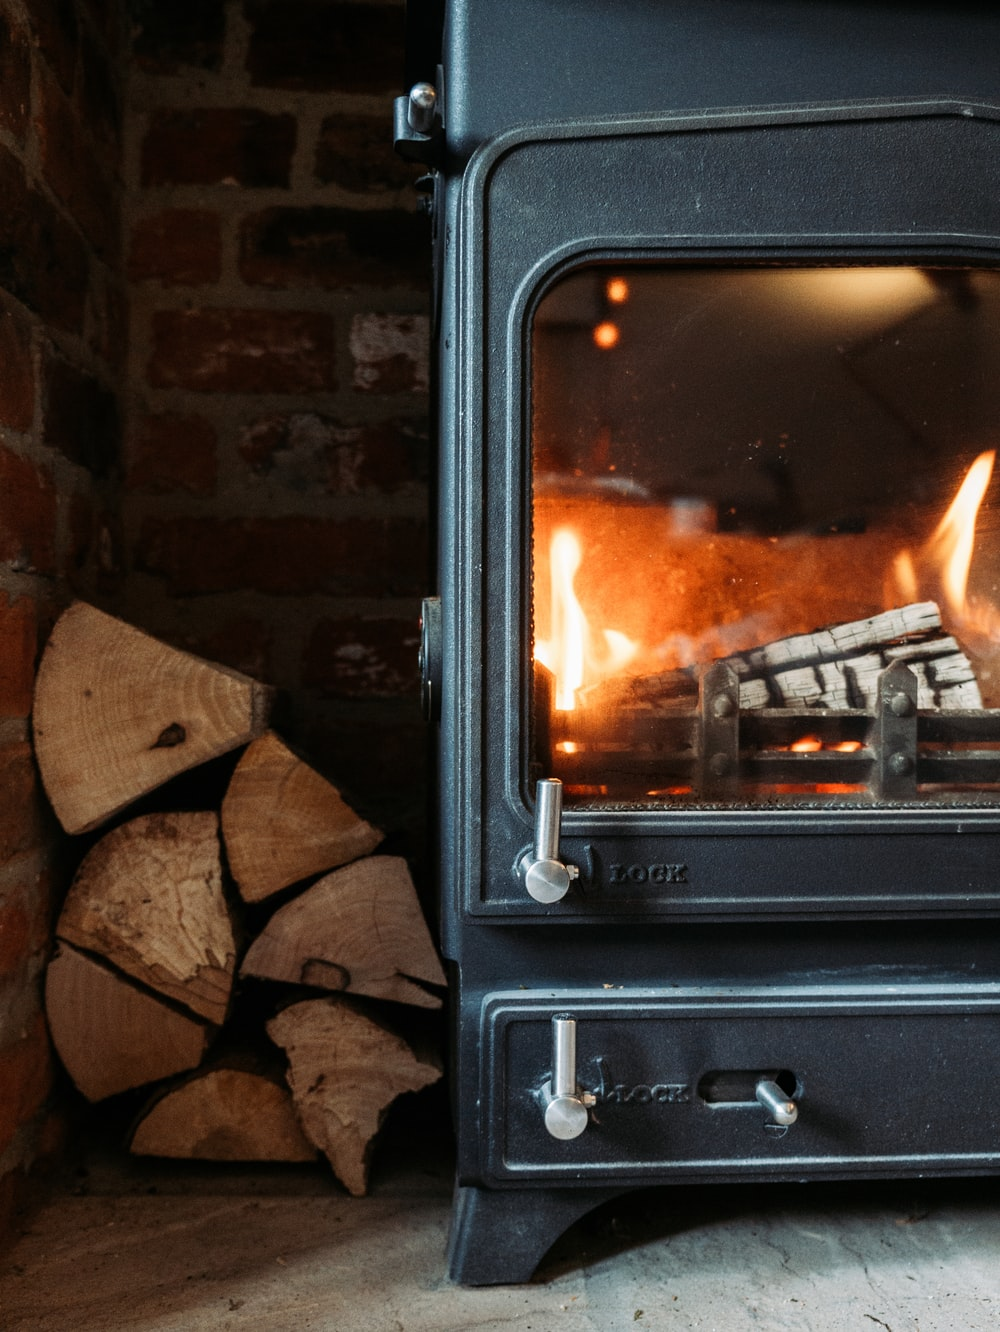 black electric fireplace turned on near brown brick wall